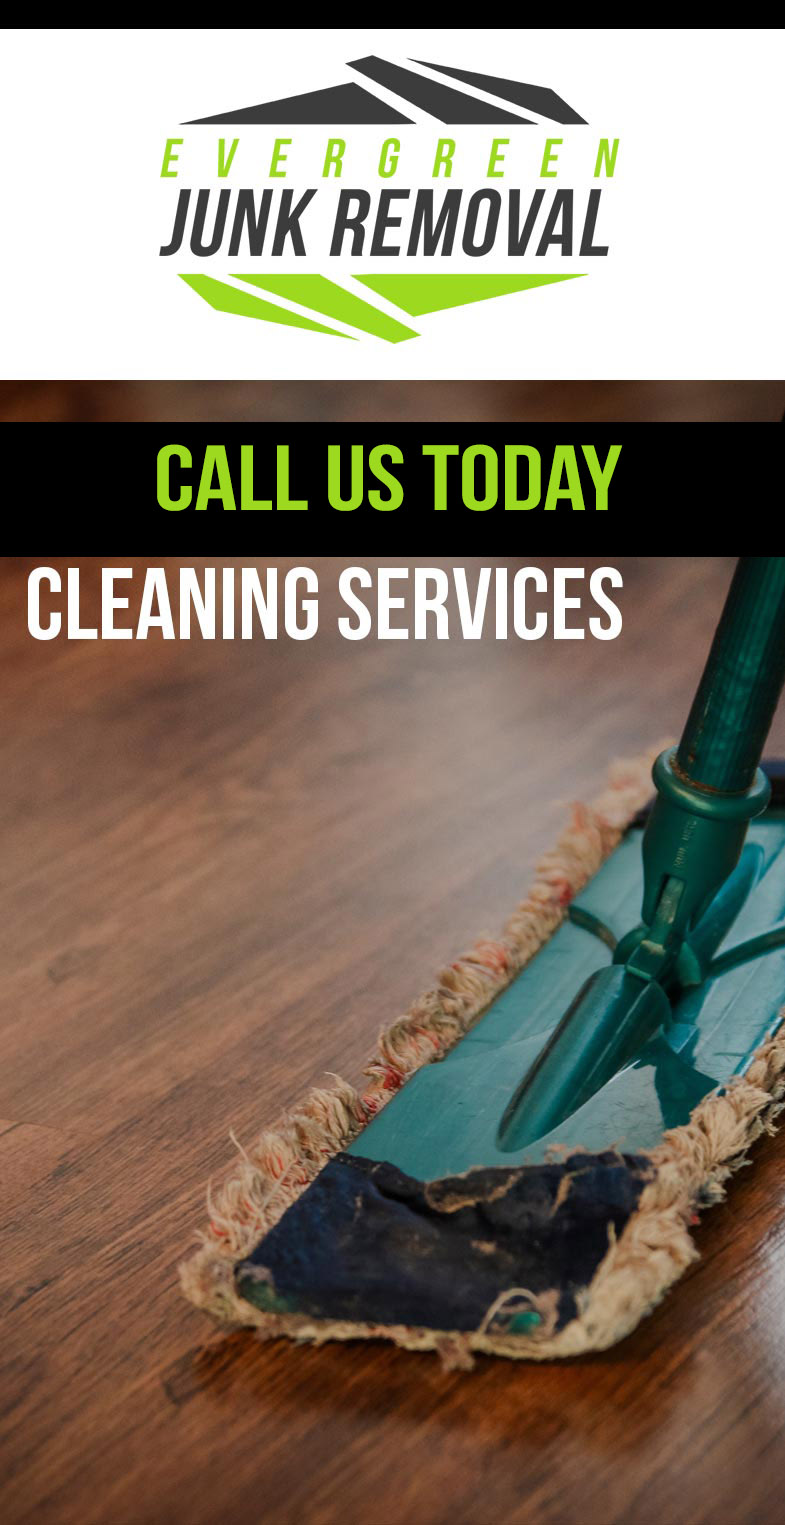 Cleaning Services Margate FL House Cleaning Service